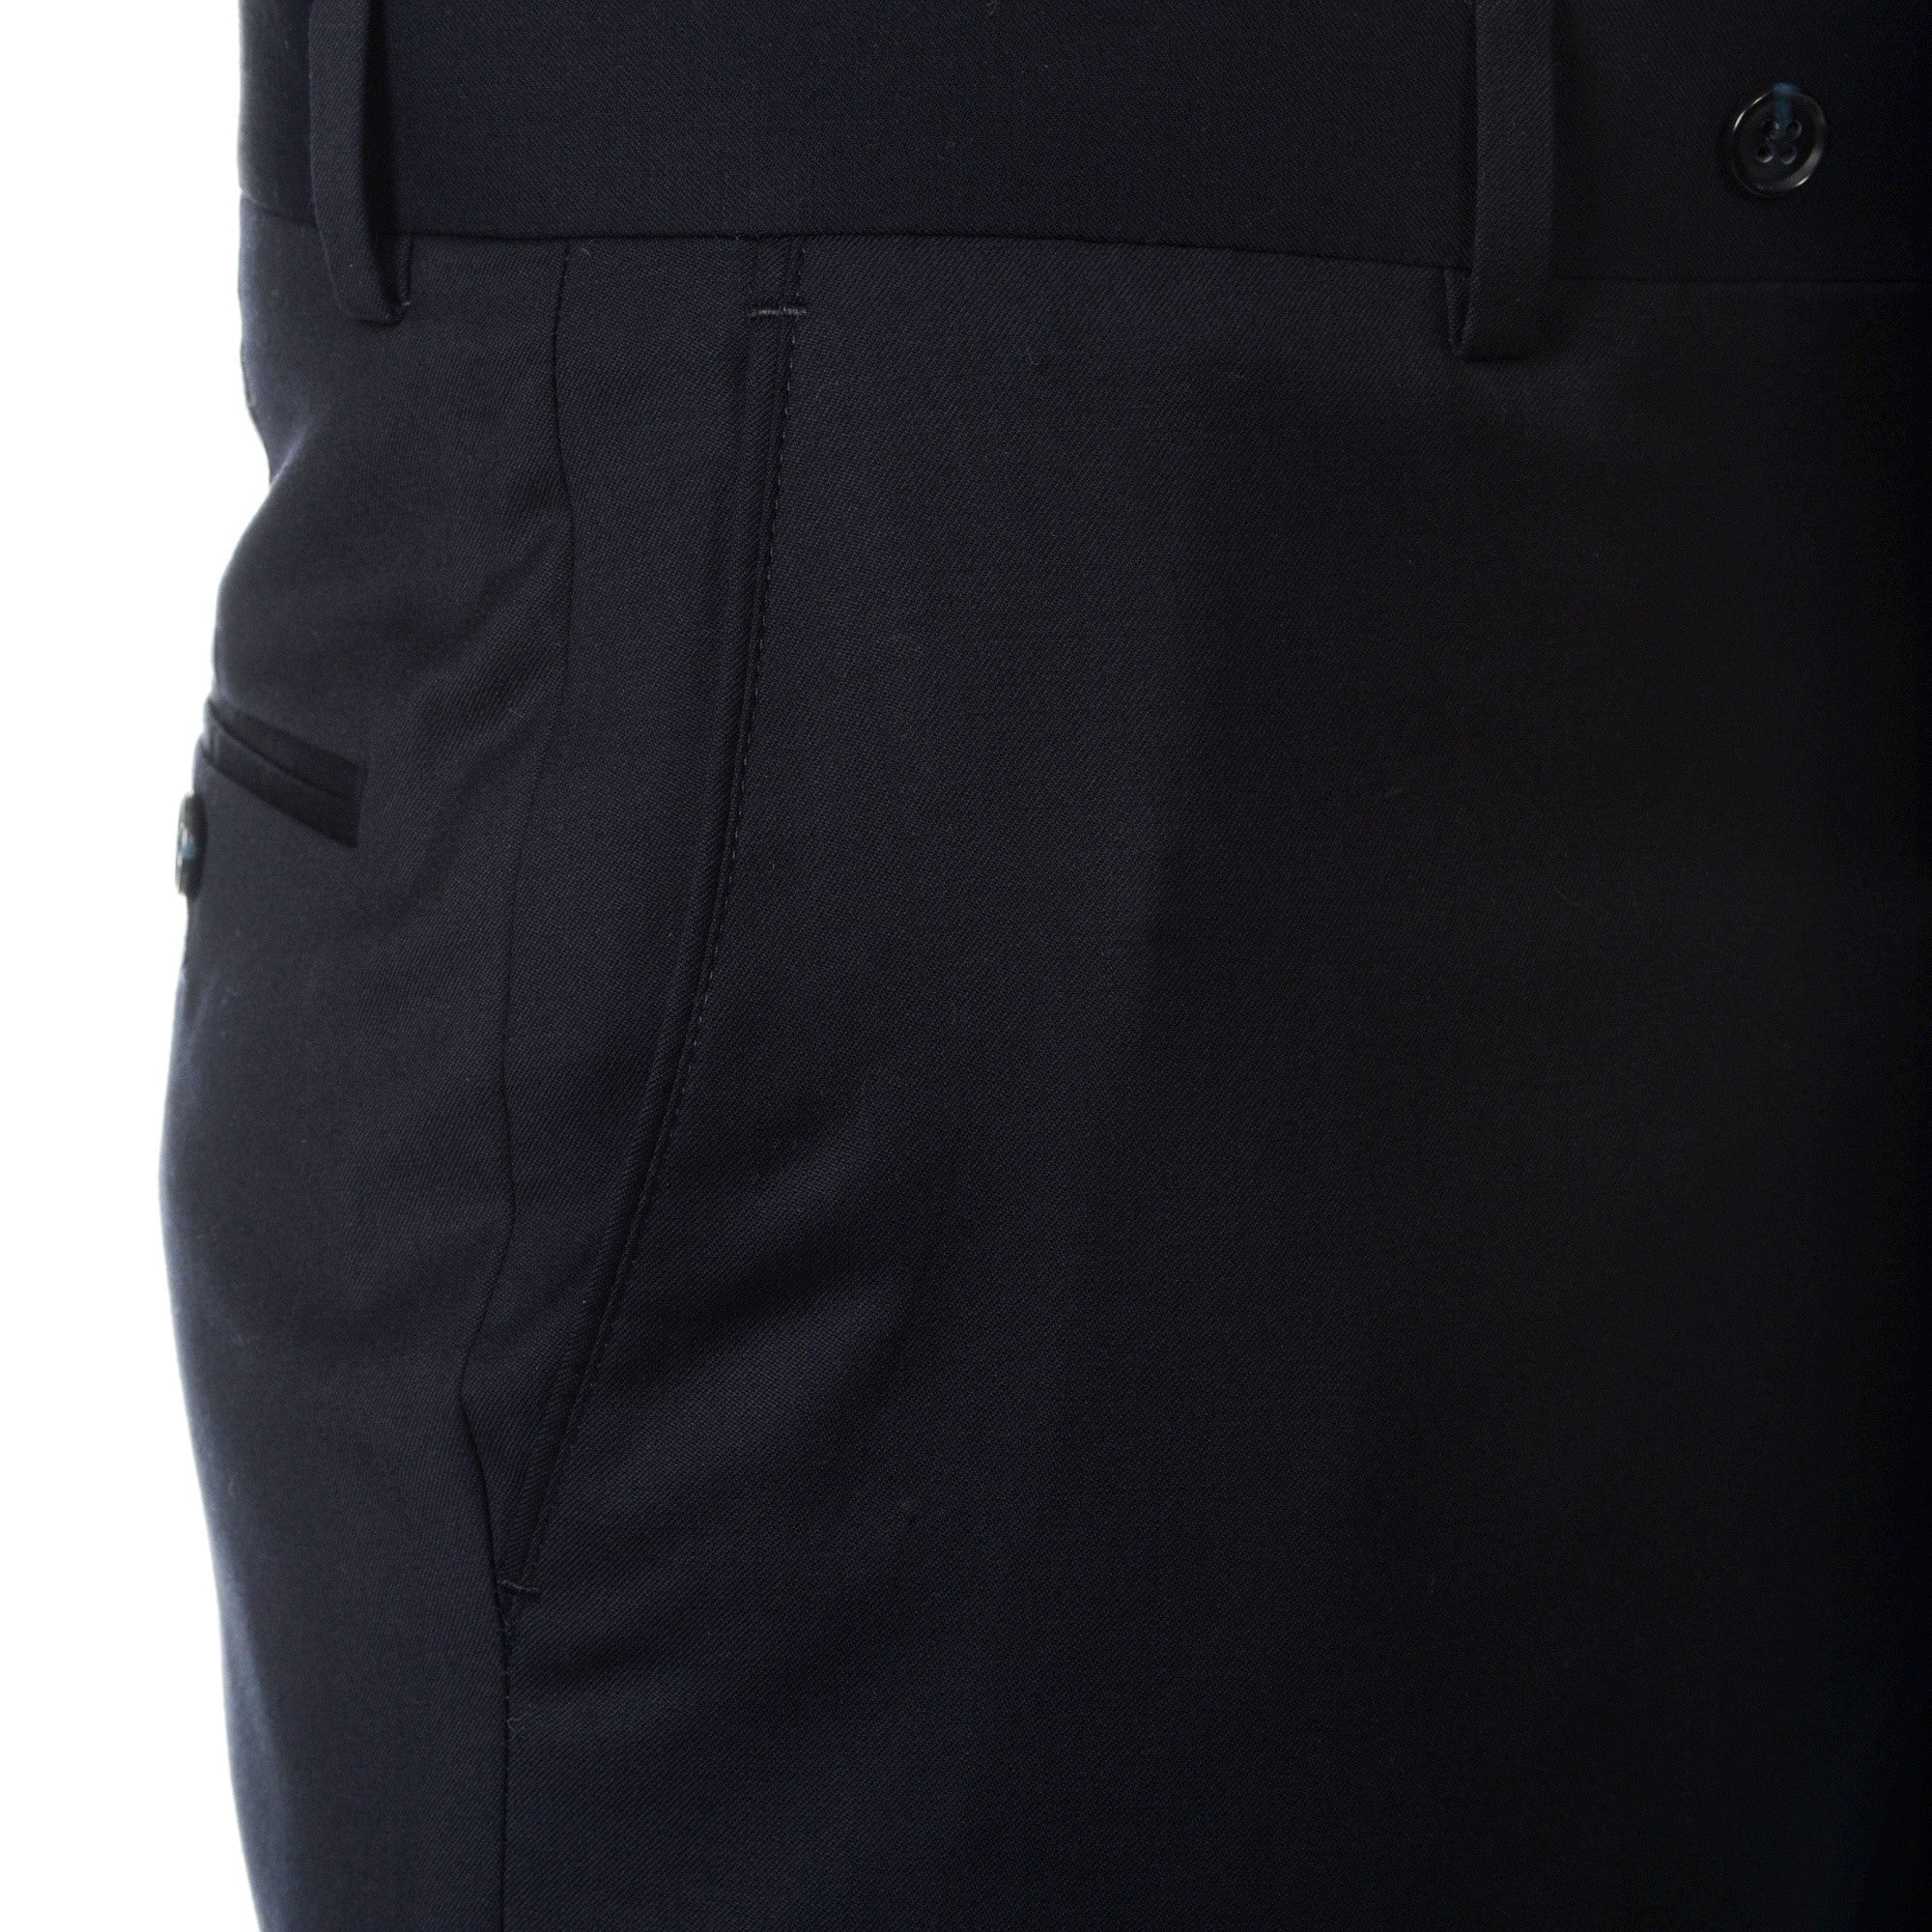 Palm Beach 100/% Wool Gabardine Black Pleated Pant Closeout